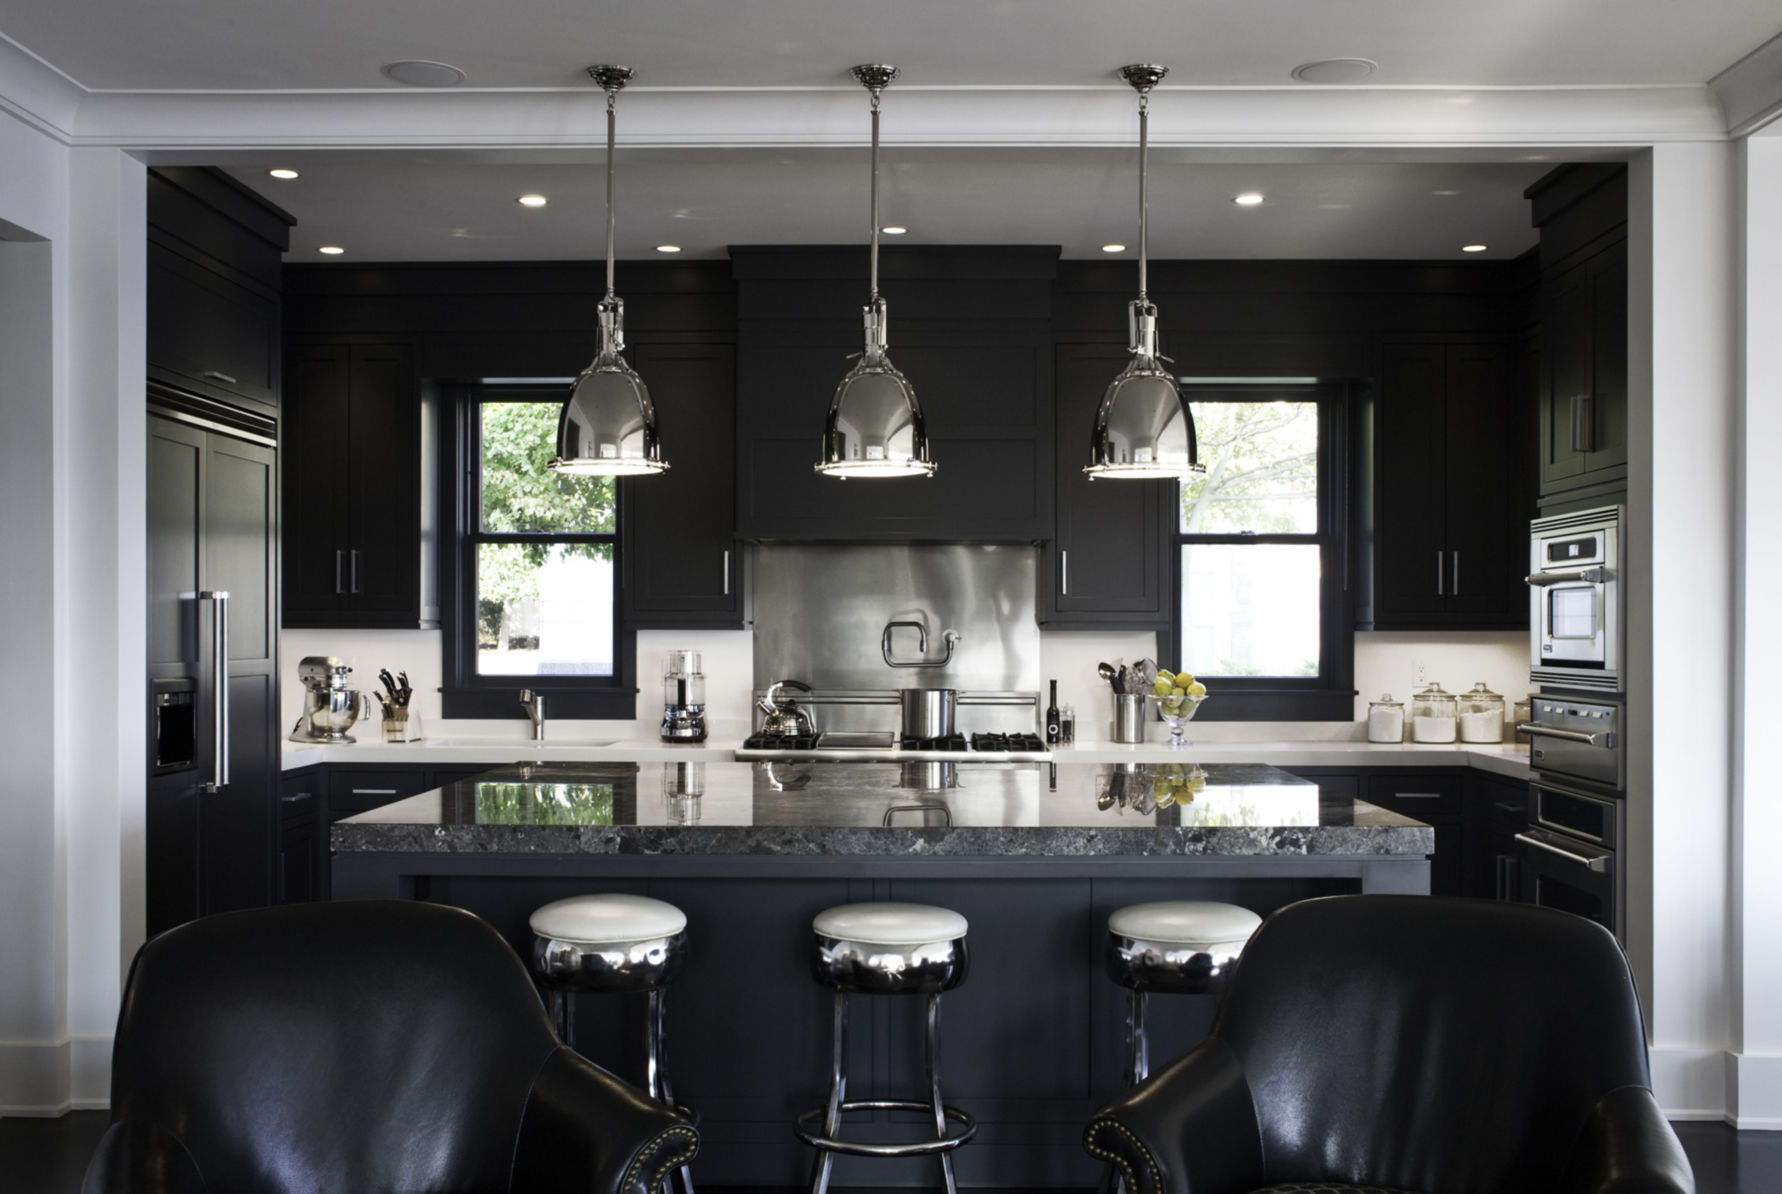 10 Kitchens With Black Appliances In Trending Design